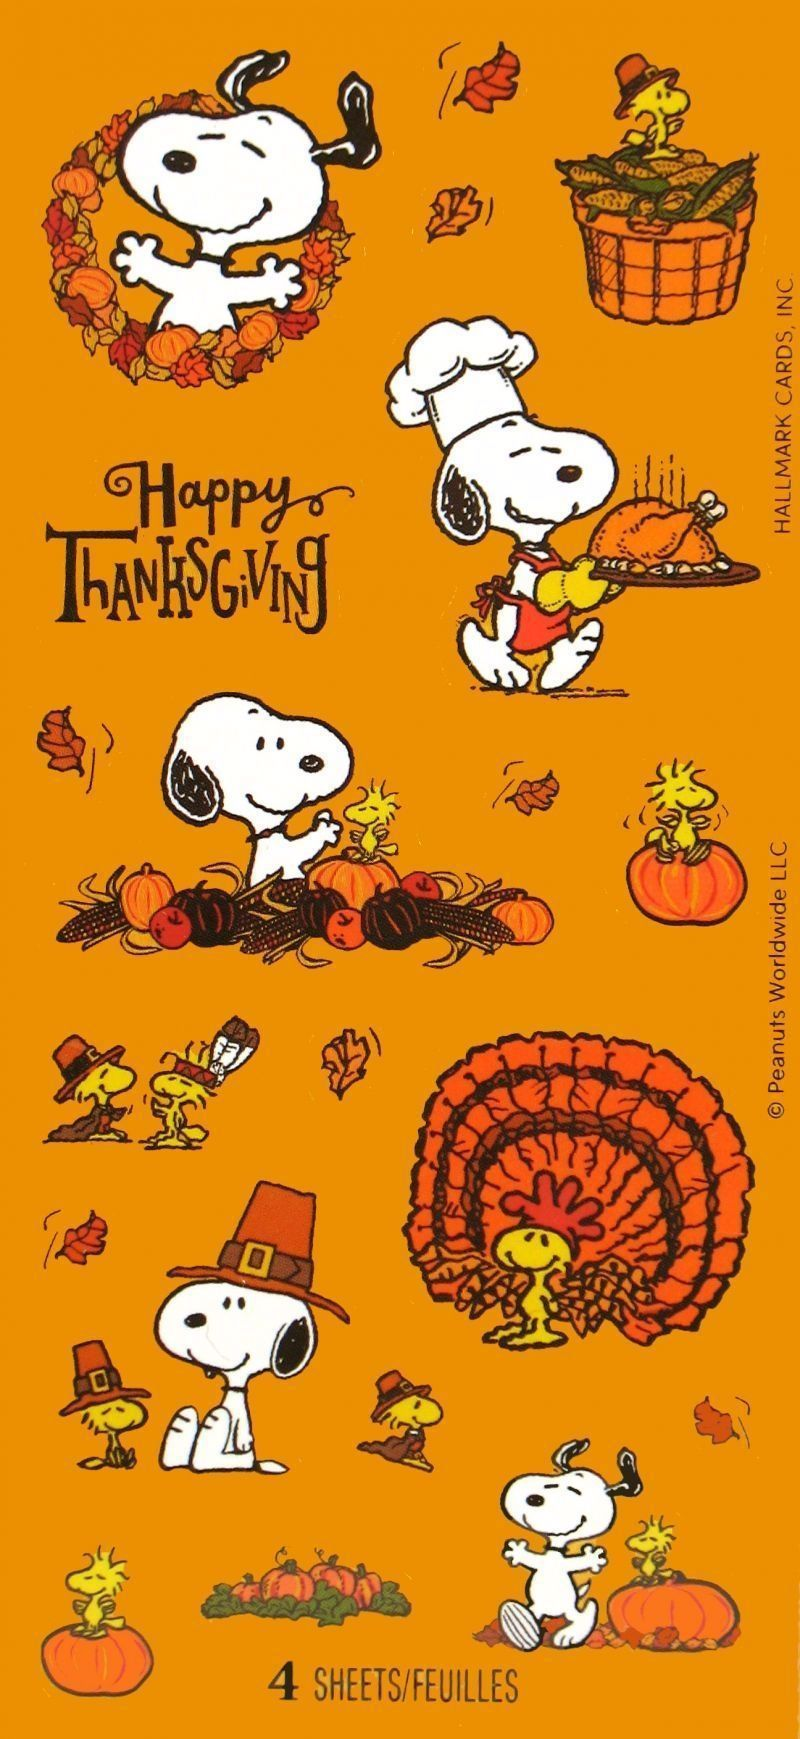 Snoopy 4ever In 2020 Thanksgiving Snoopy Peanuts Thanksgiving Snoopy Wallpaper